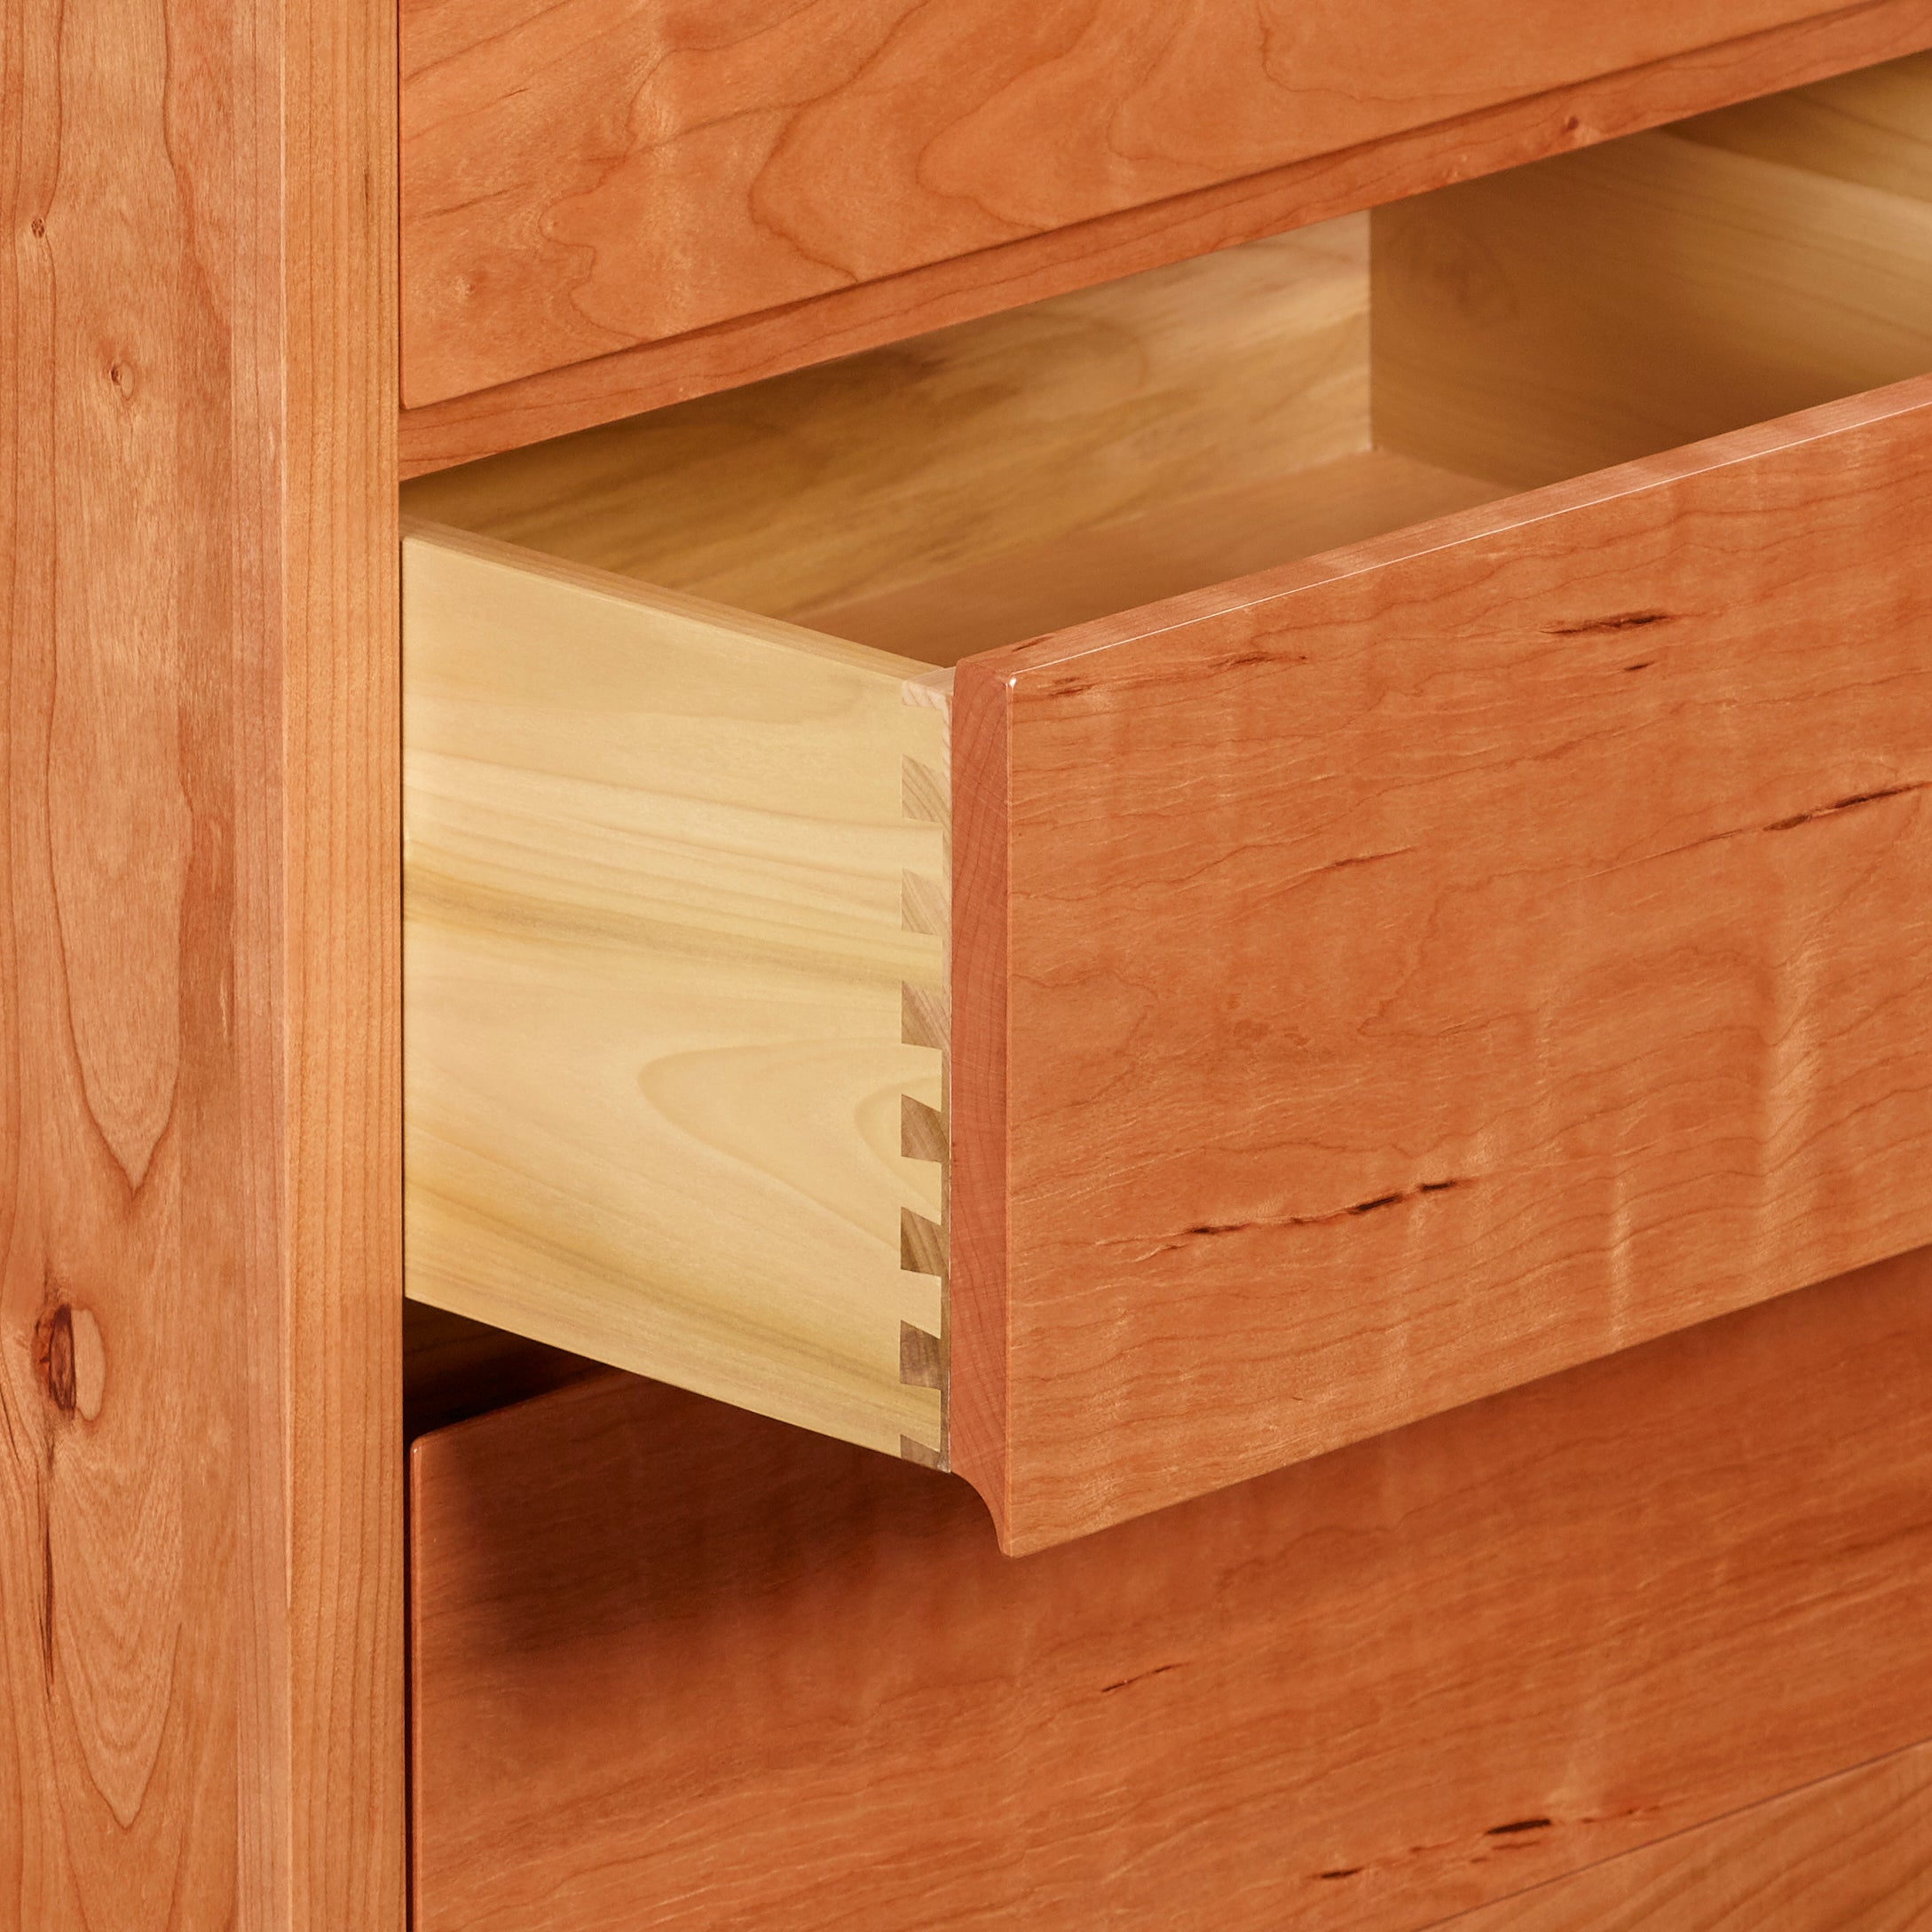 Open drawer of cherry Acadia bedroom storage dresser showing dovetail joinery